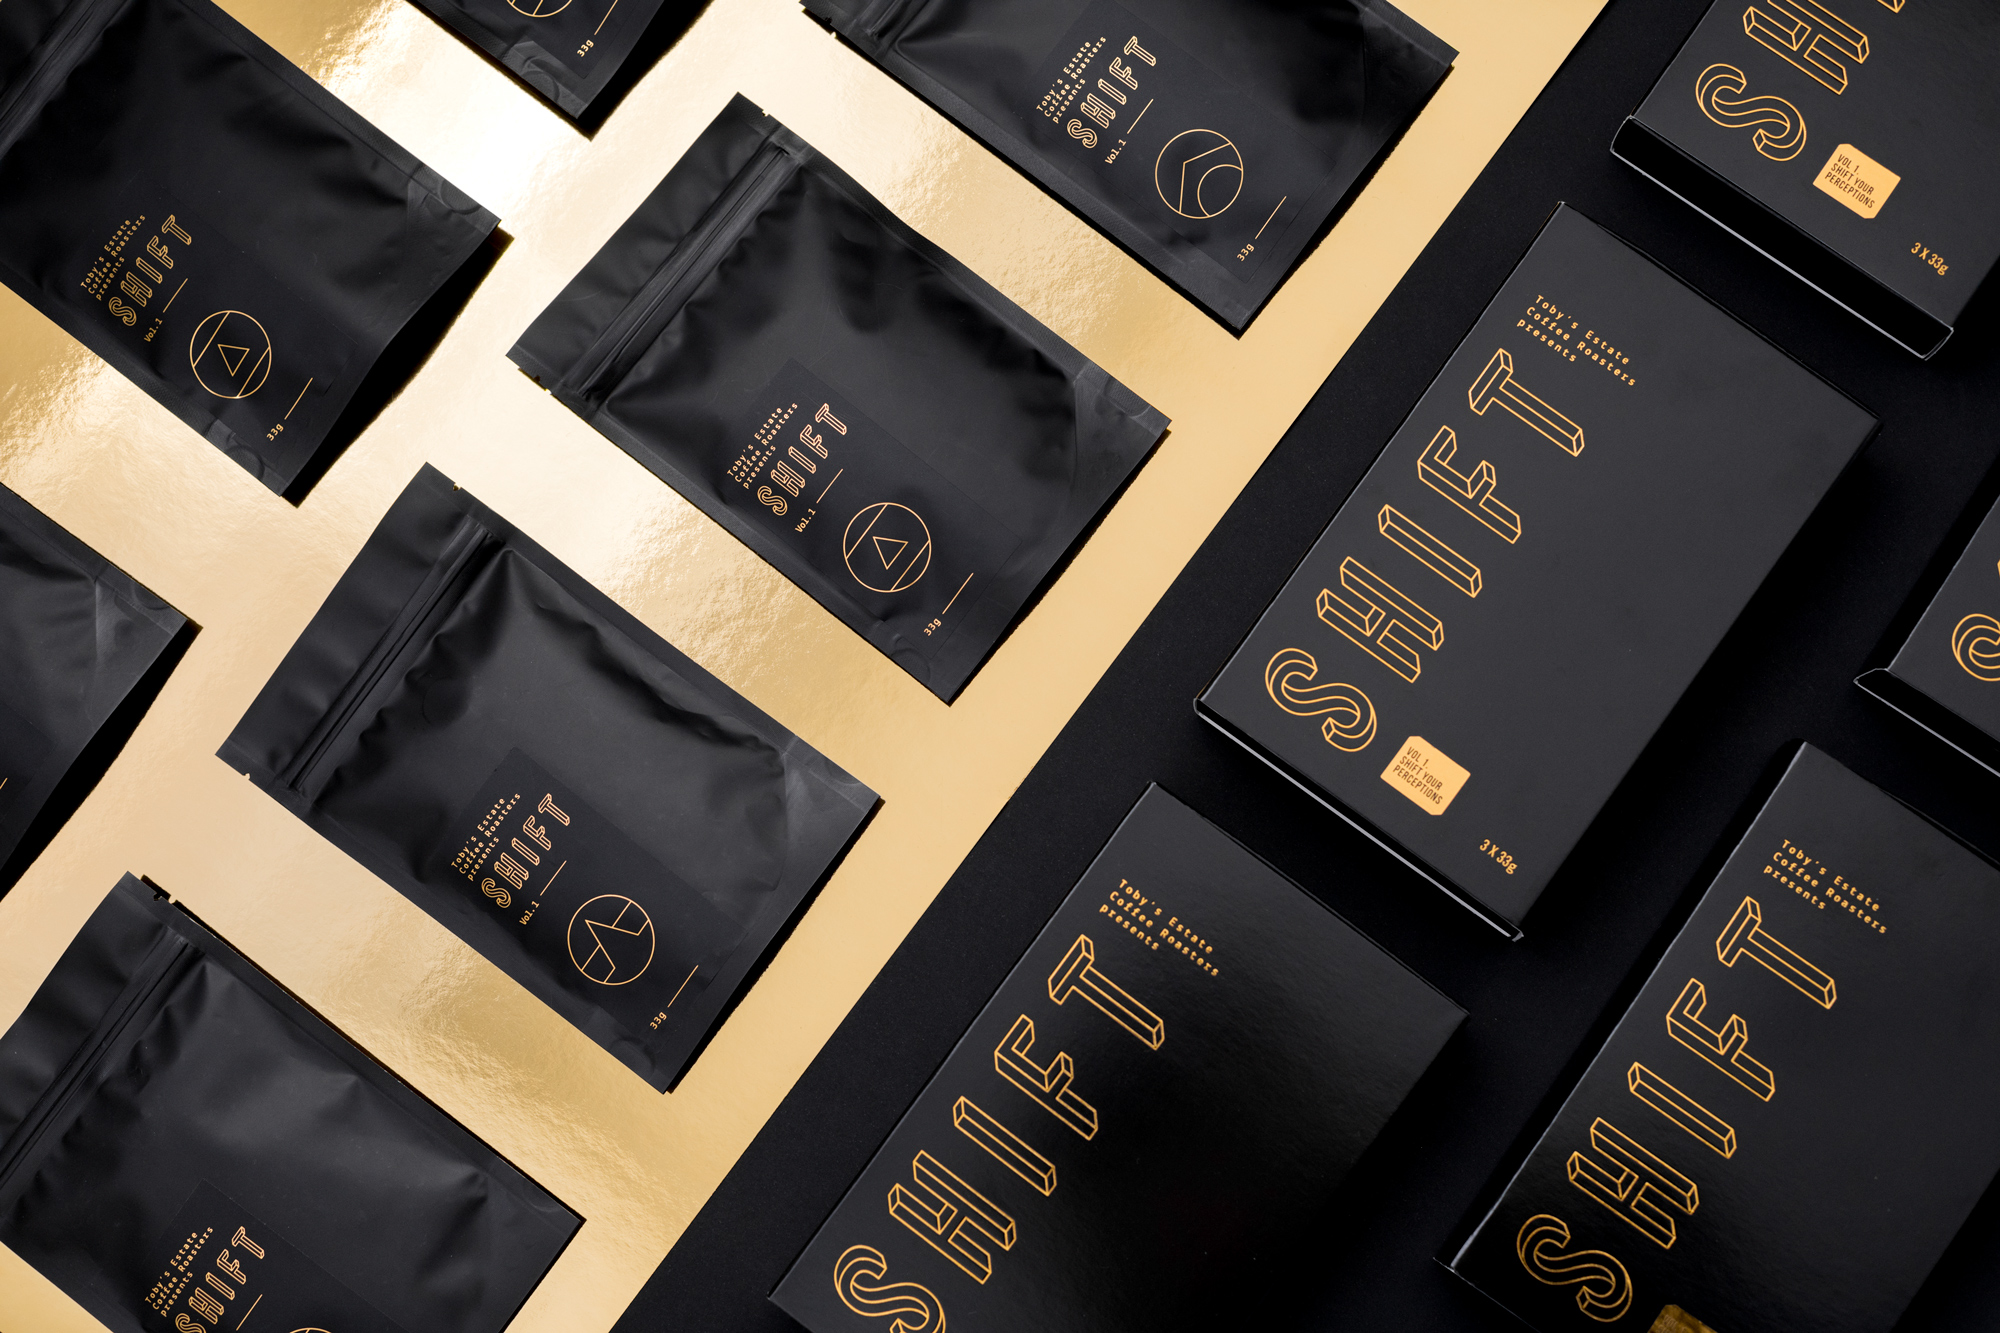 Packaging for Shift Coffee by Toby's Estate Cofee Roasters